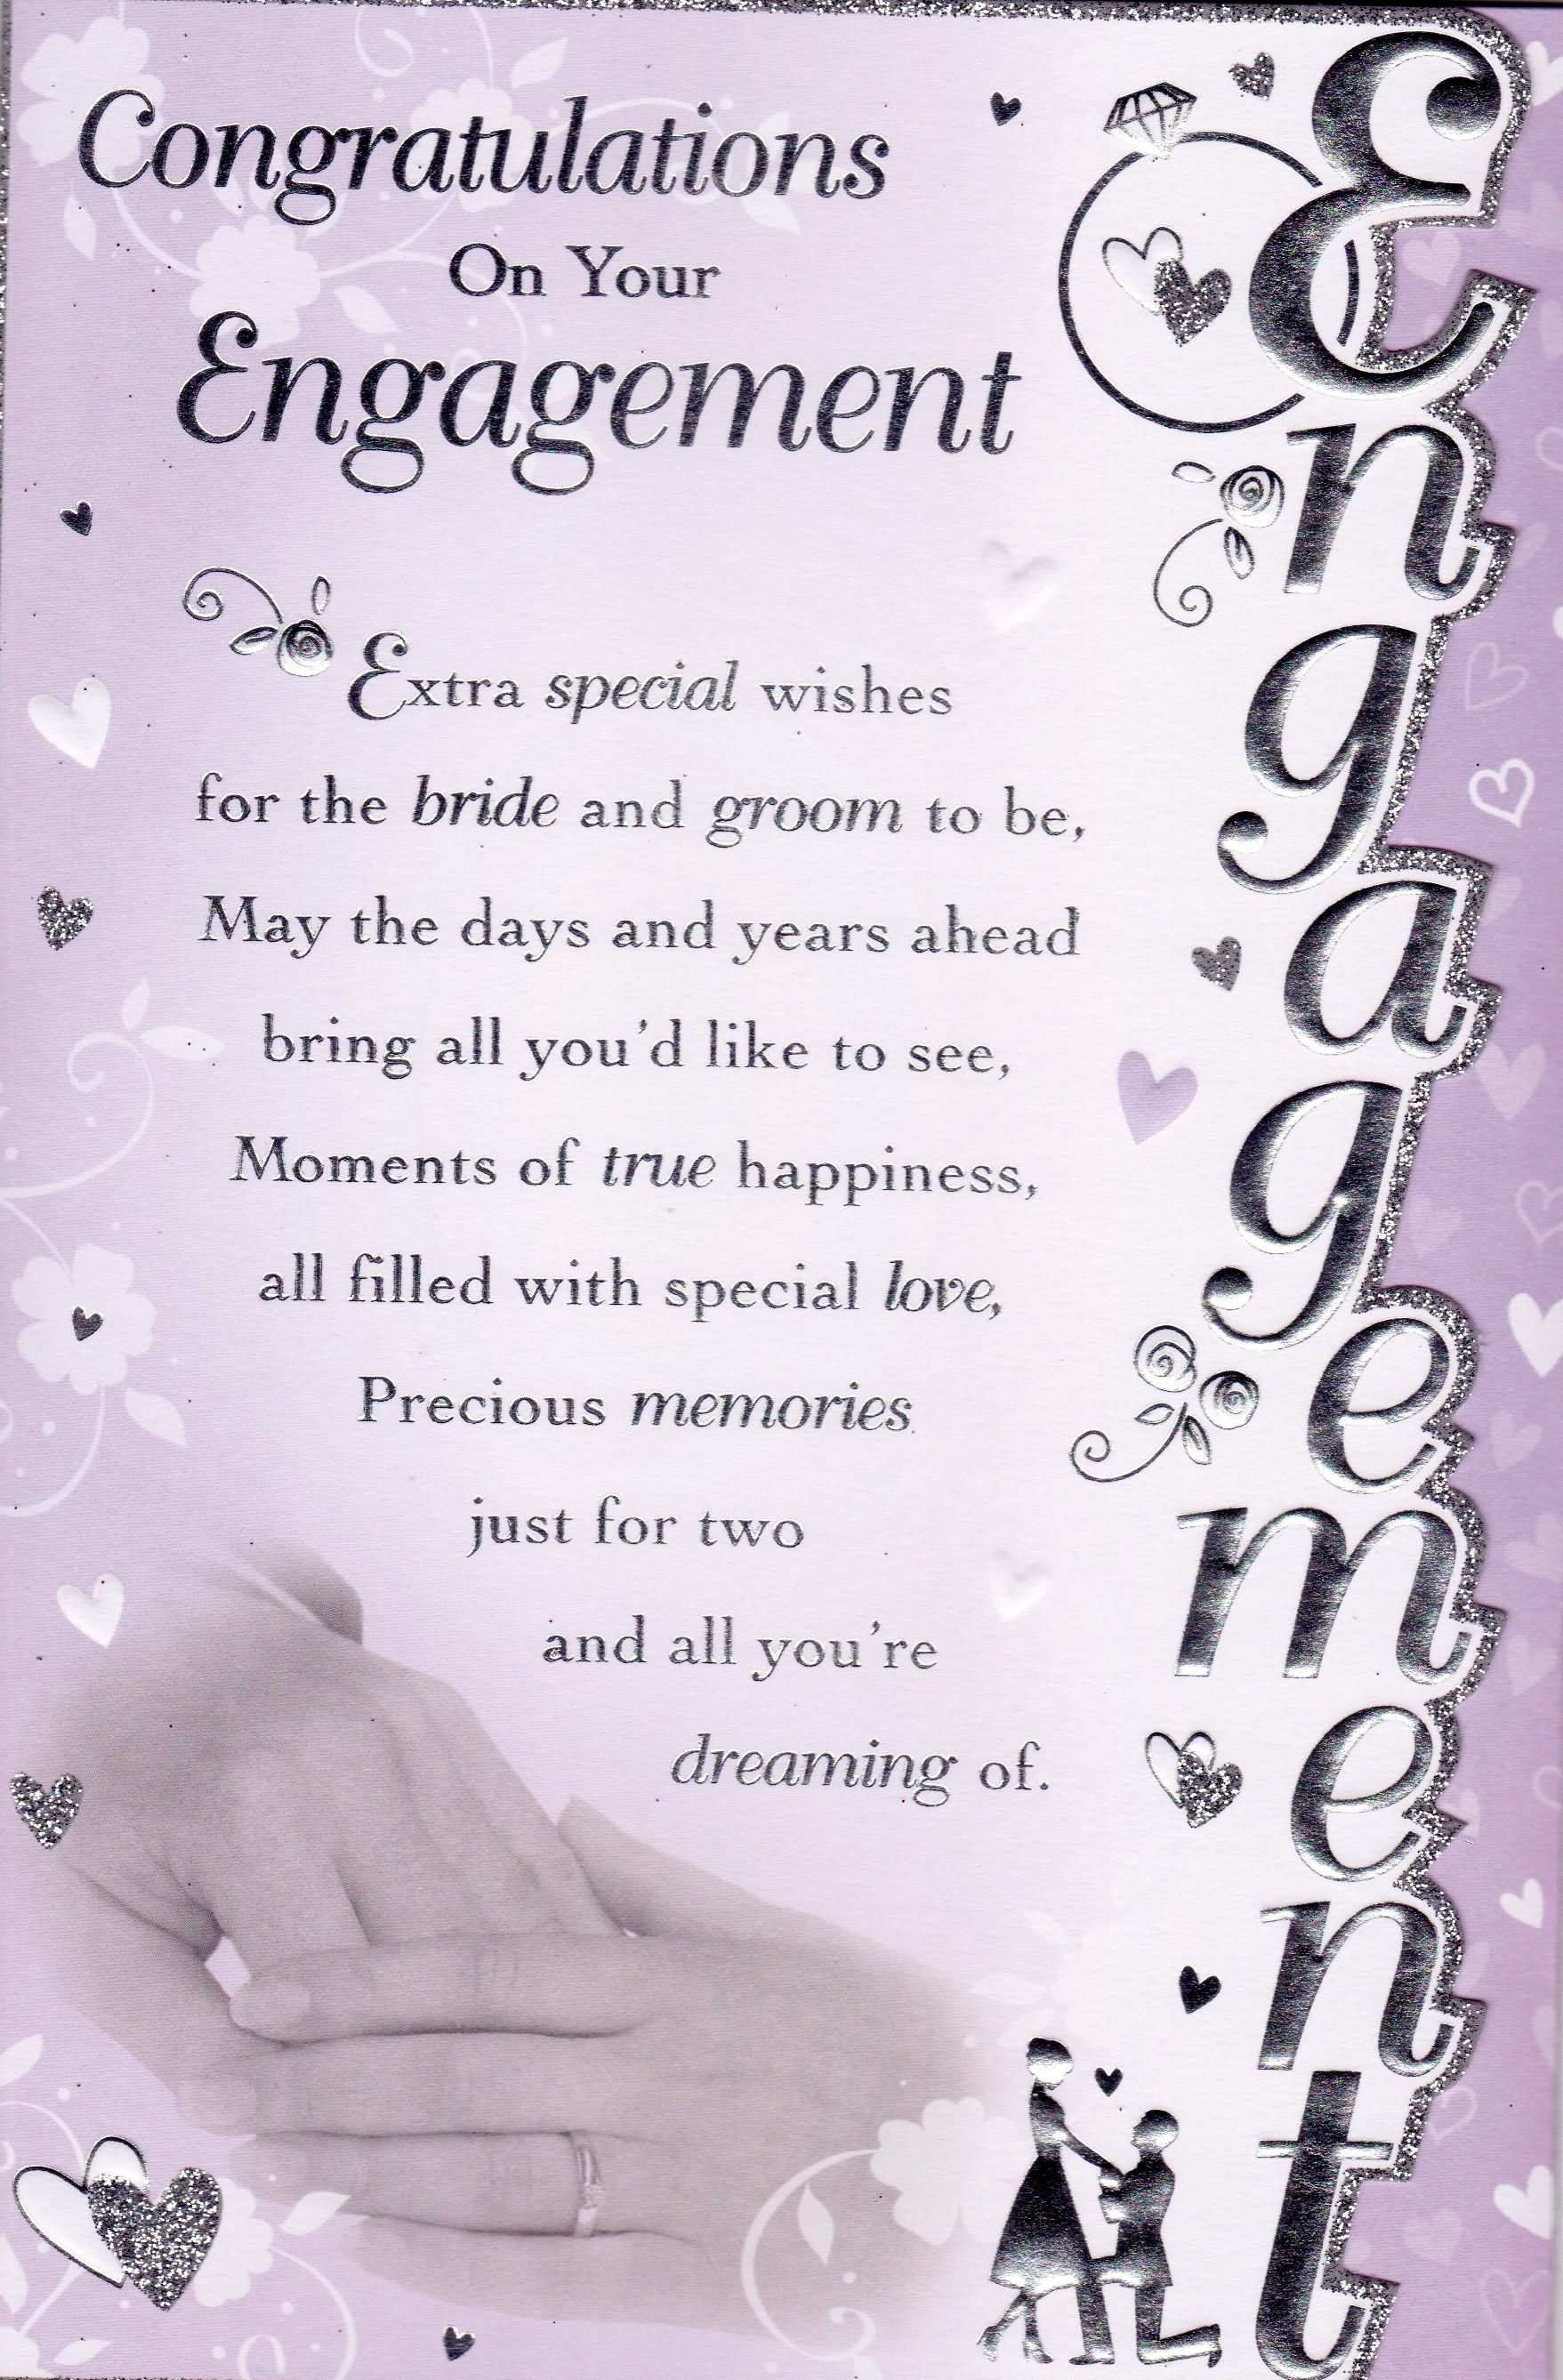 Congratulations on your engagement greeting card flo pinterest congratulations on your engagement greeting card m4hsunfo